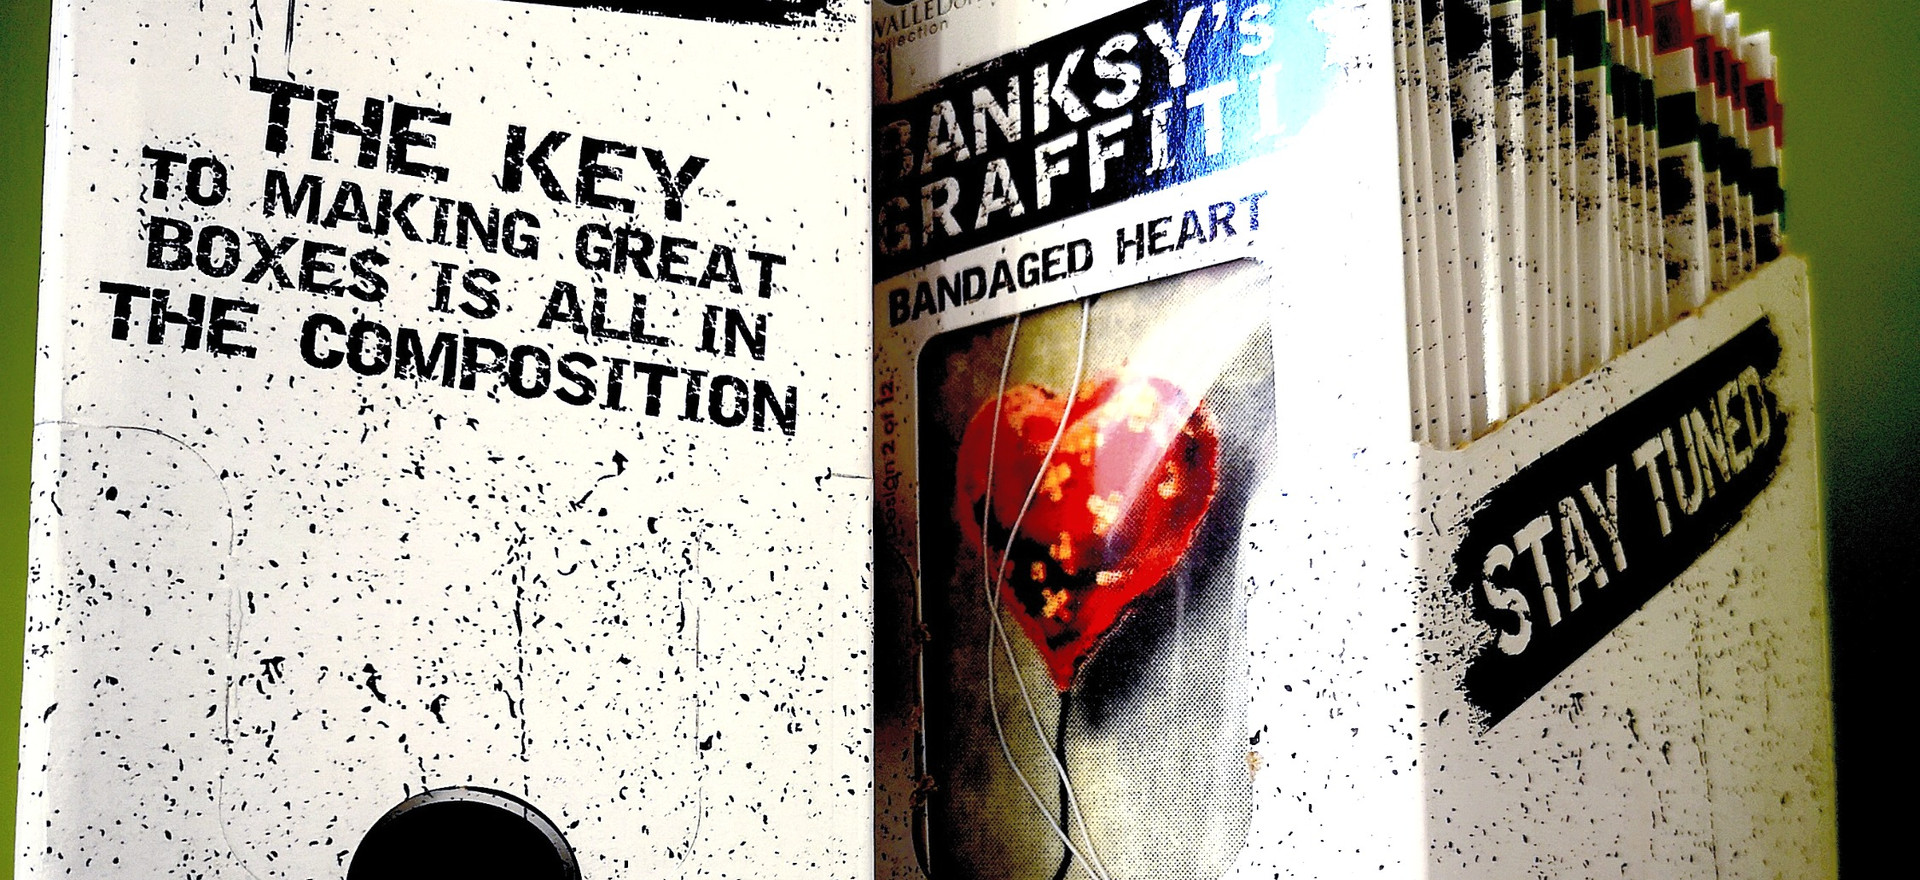 Banksy's Graffiti Car Perfumes Box